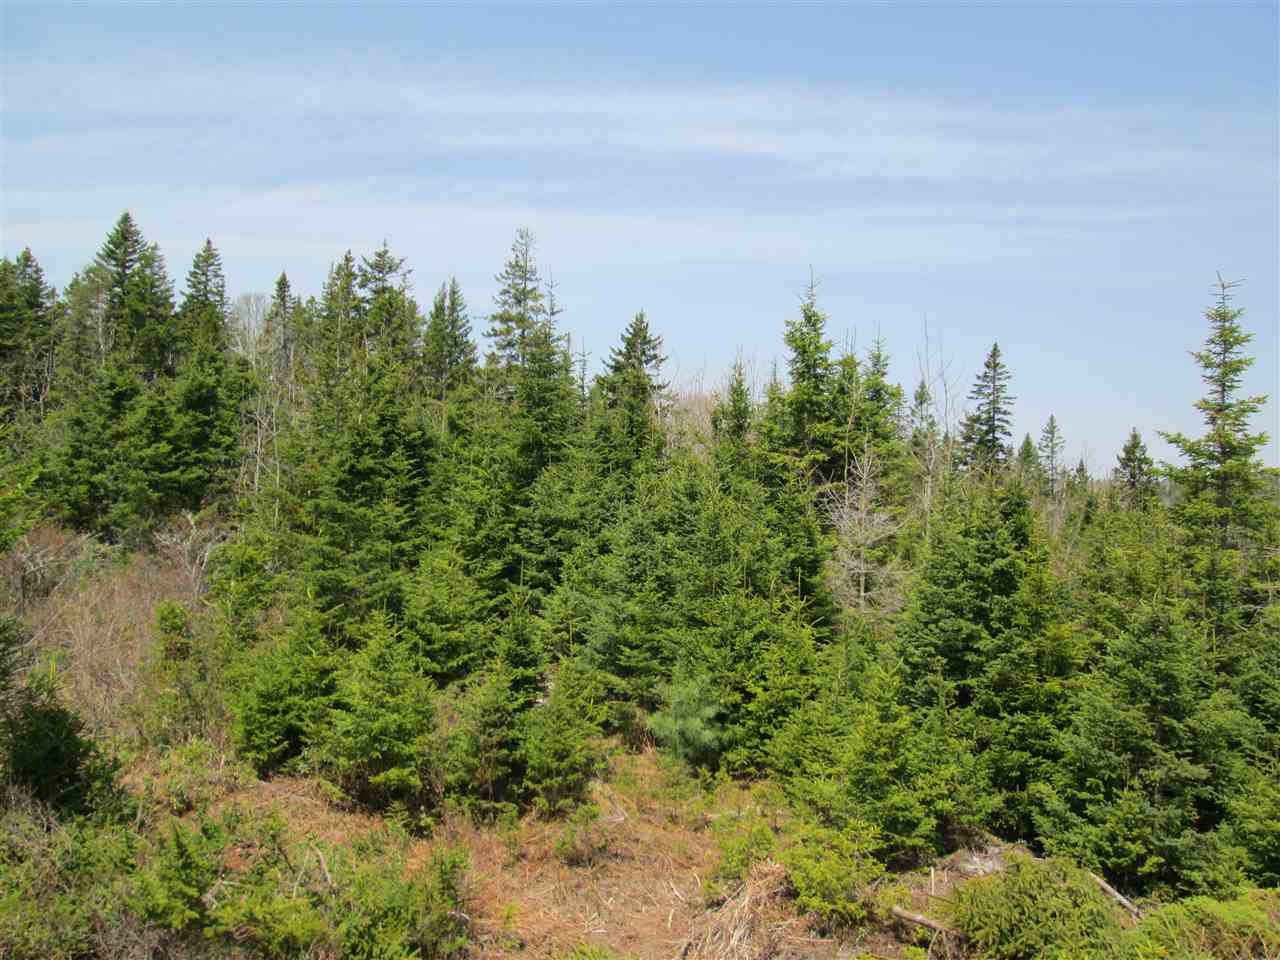 Photo 6: Photos: 3 Lots Highway 331 in Dublin Shore: 405-Lunenburg County Vacant Land for sale (South Shore)  : MLS®# 201712817